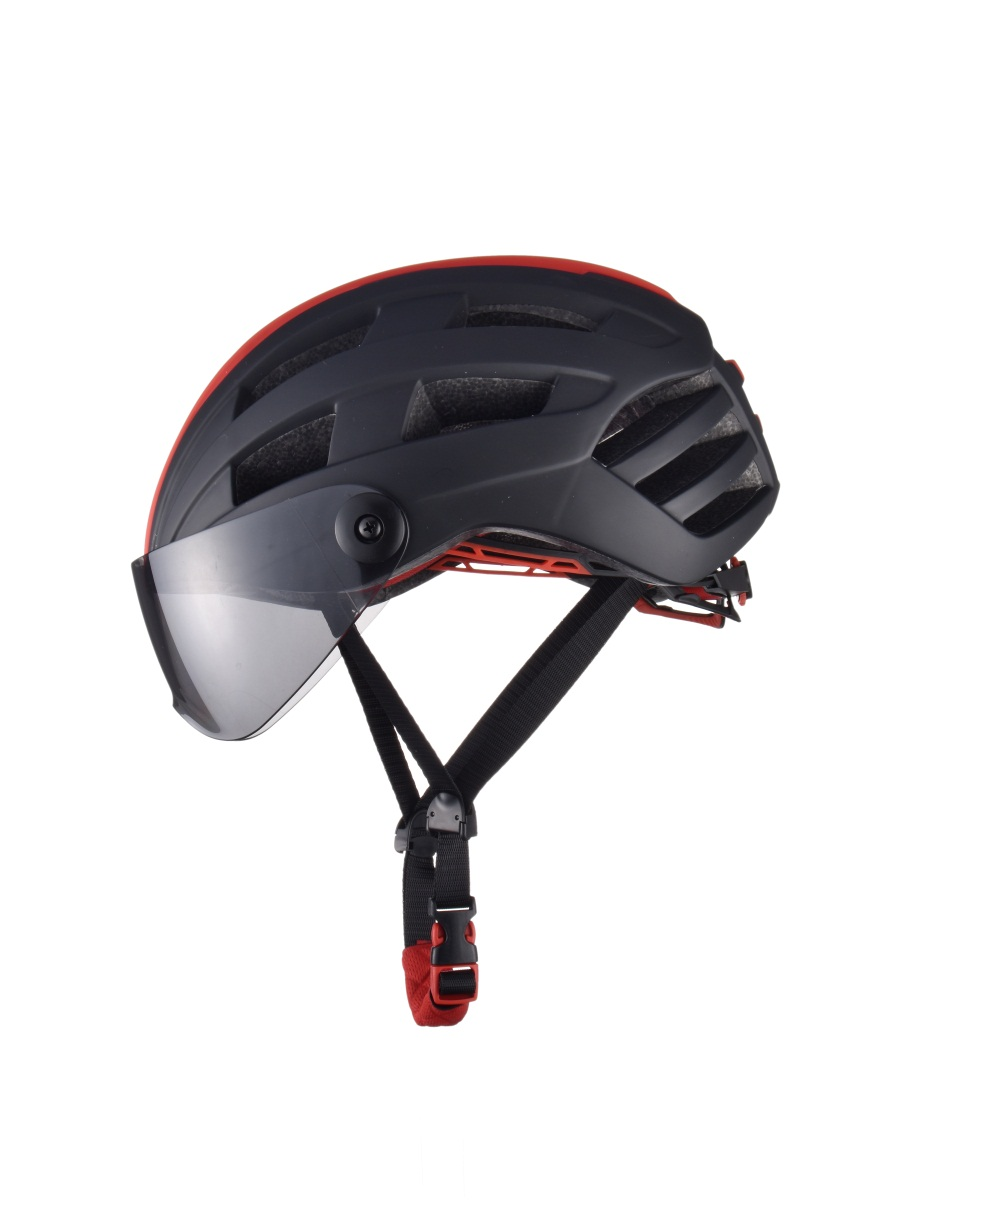 1be36919 Luminous Bicycle Helmet Bike Cycling Adult Adjustable Unisex Safety with  Visor Mirror- Red with Black